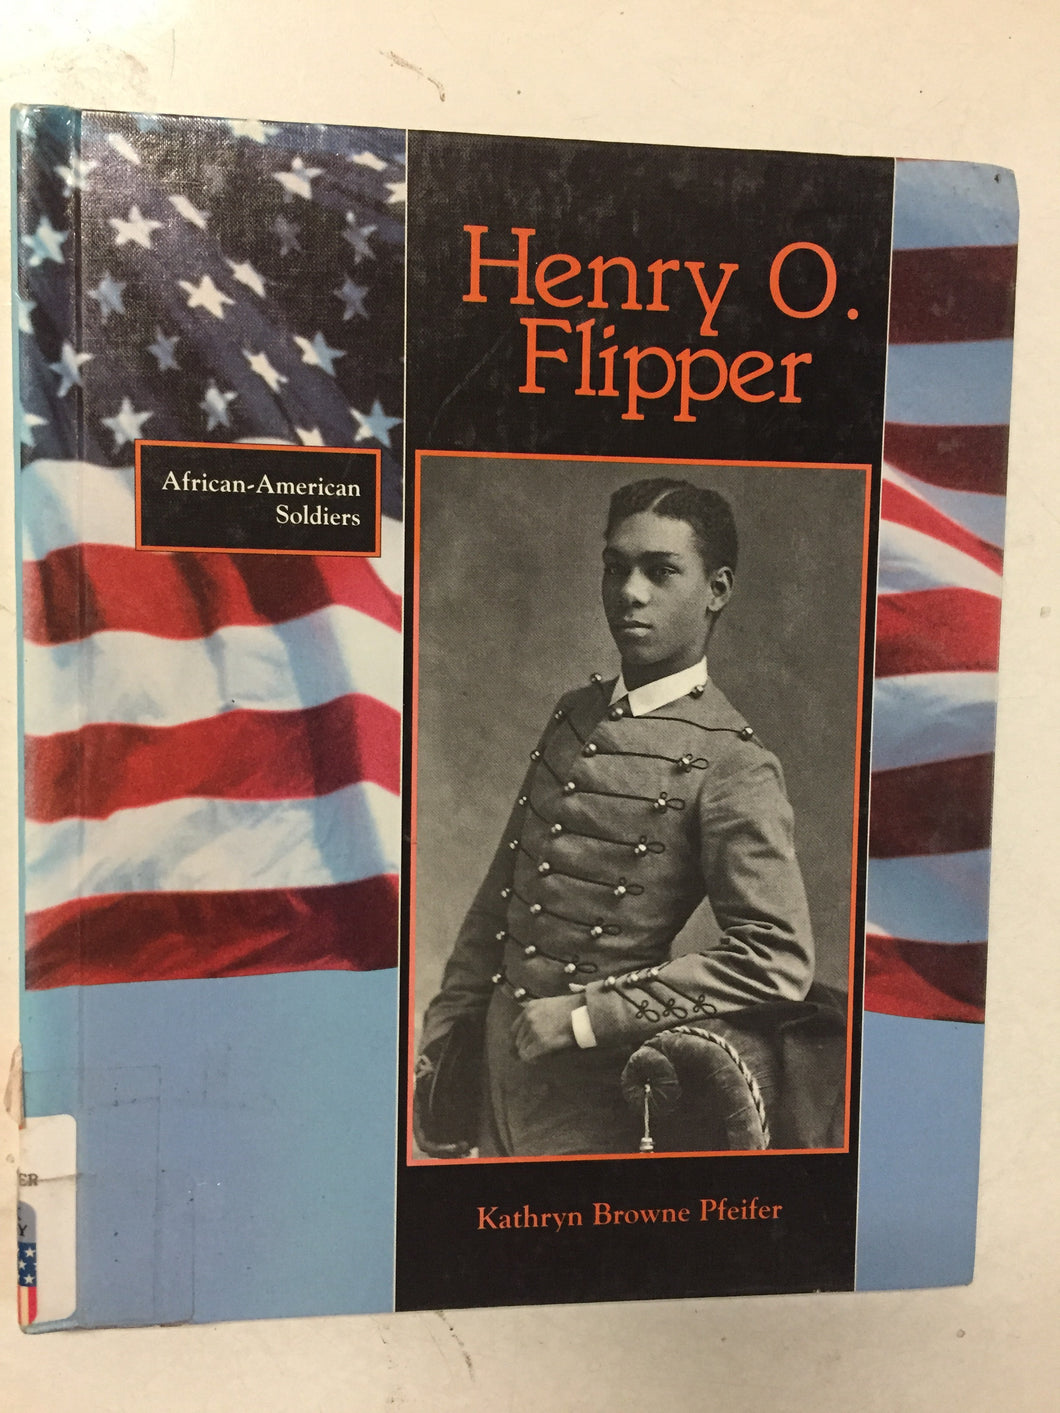 Henry O. Flipper - Slickcatbooks